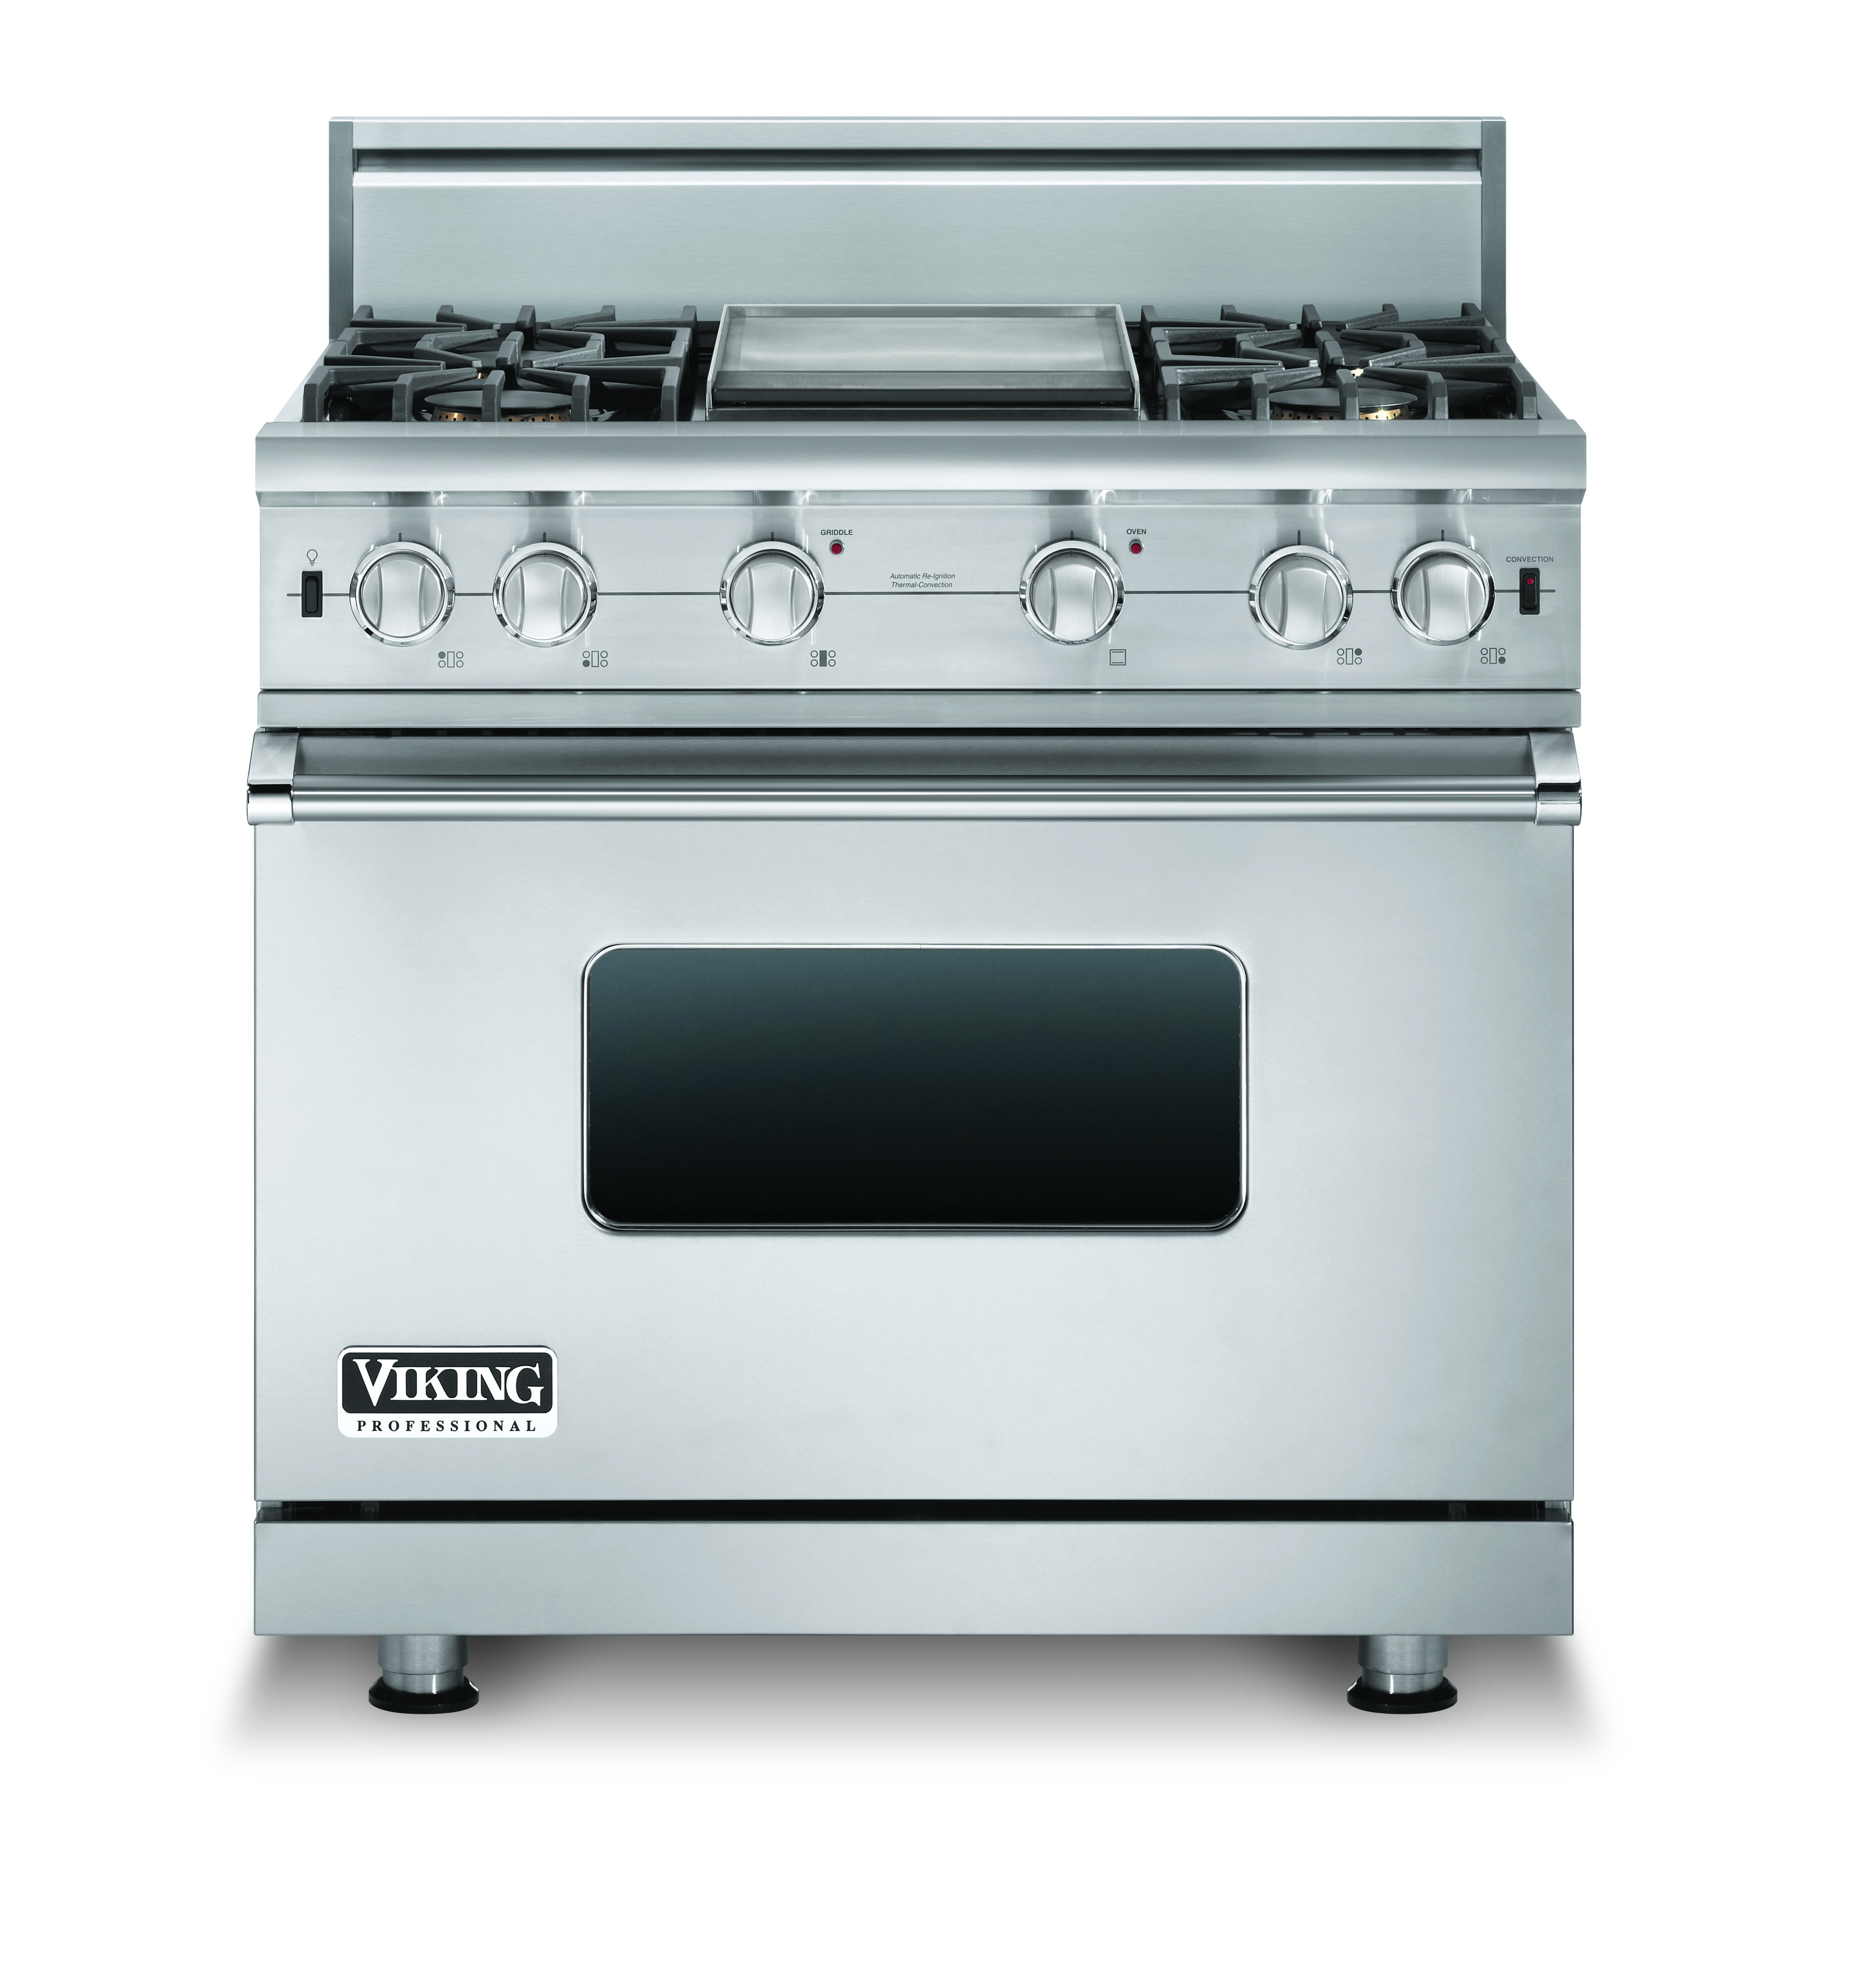 Viking Appliance Logo Viking Range Agrees To Pay $4.65 Million Civil Penalty Maintain